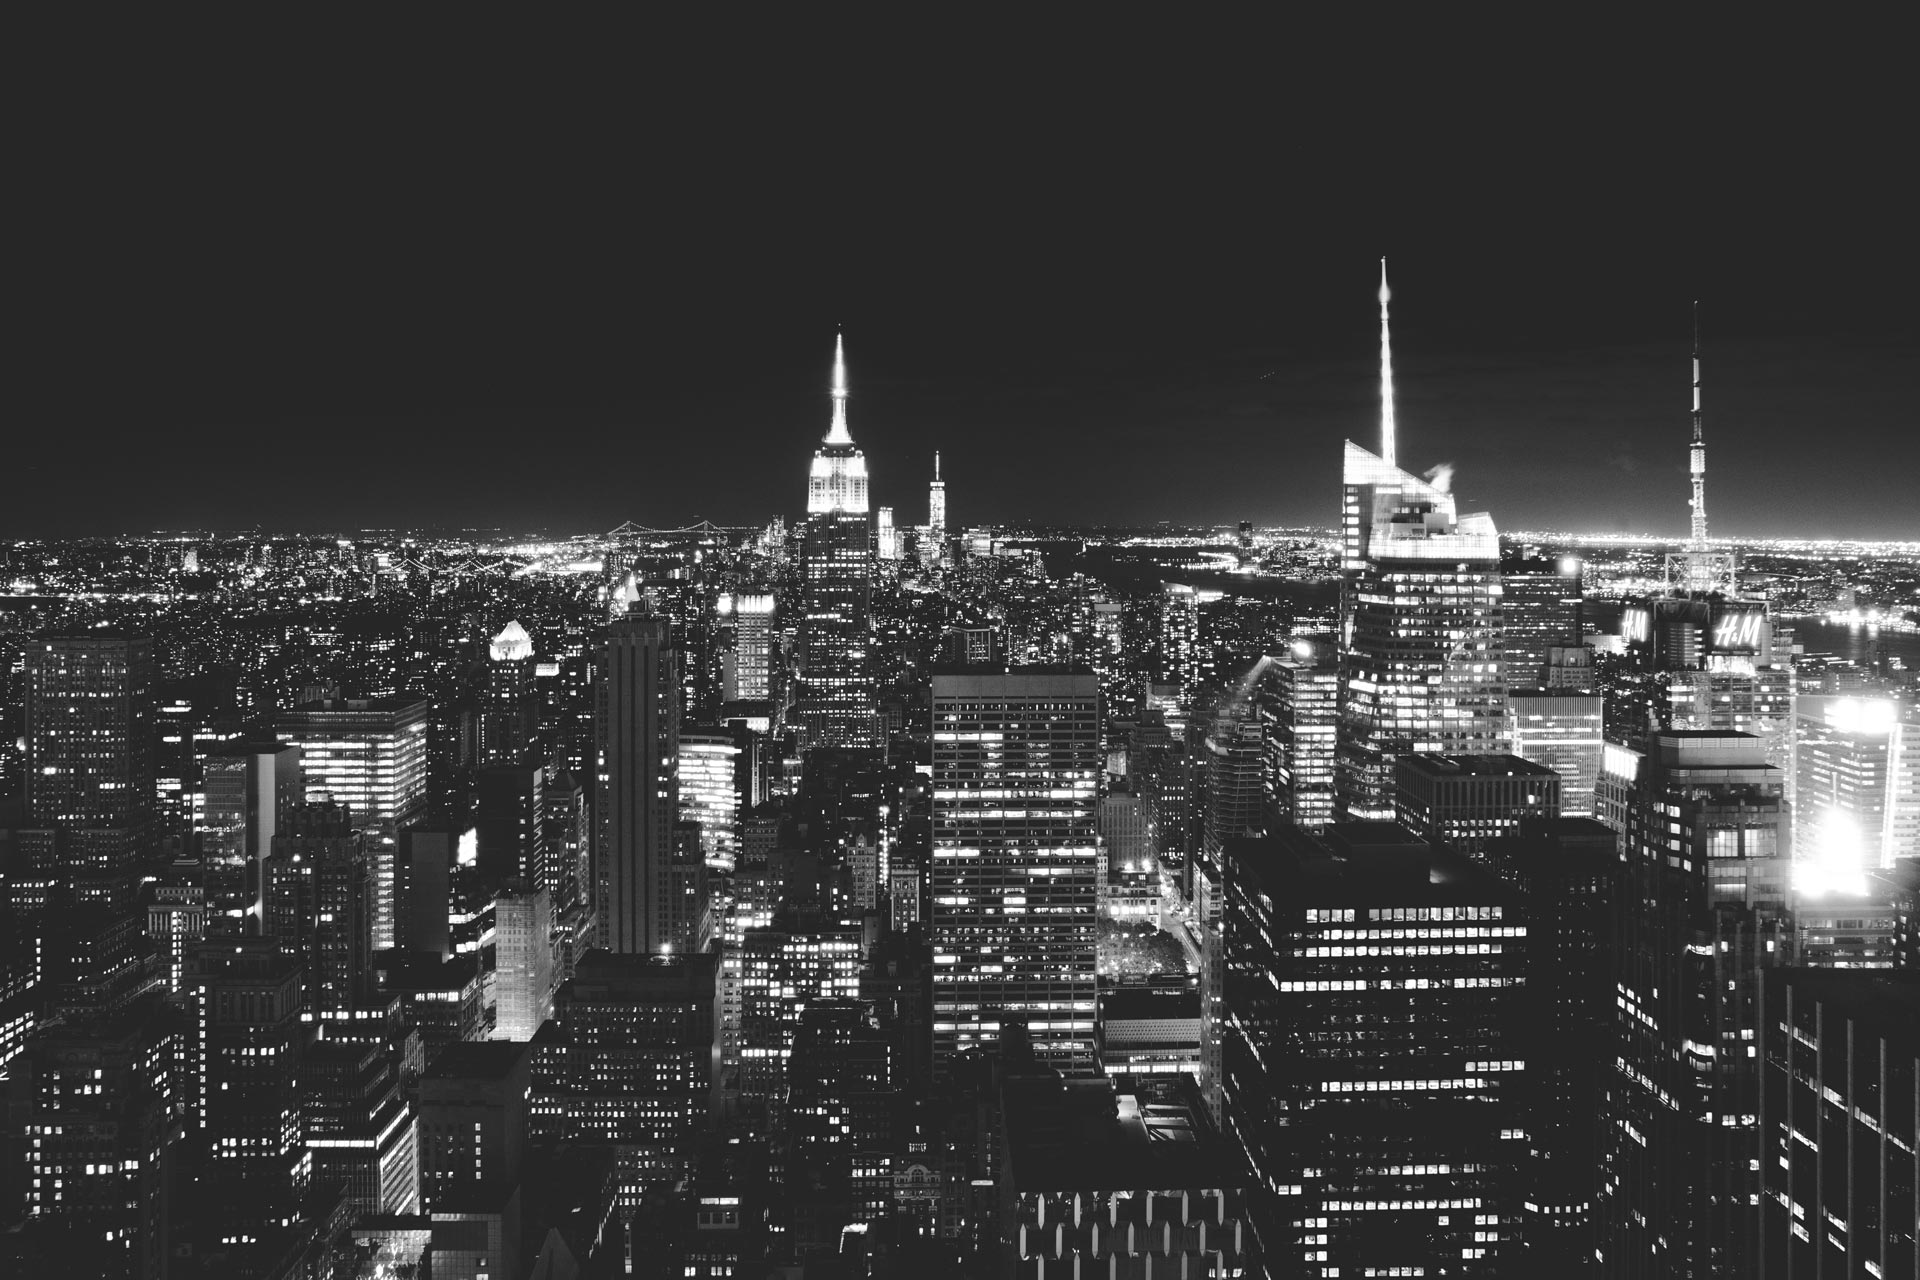 nyc-bw-poster-sll